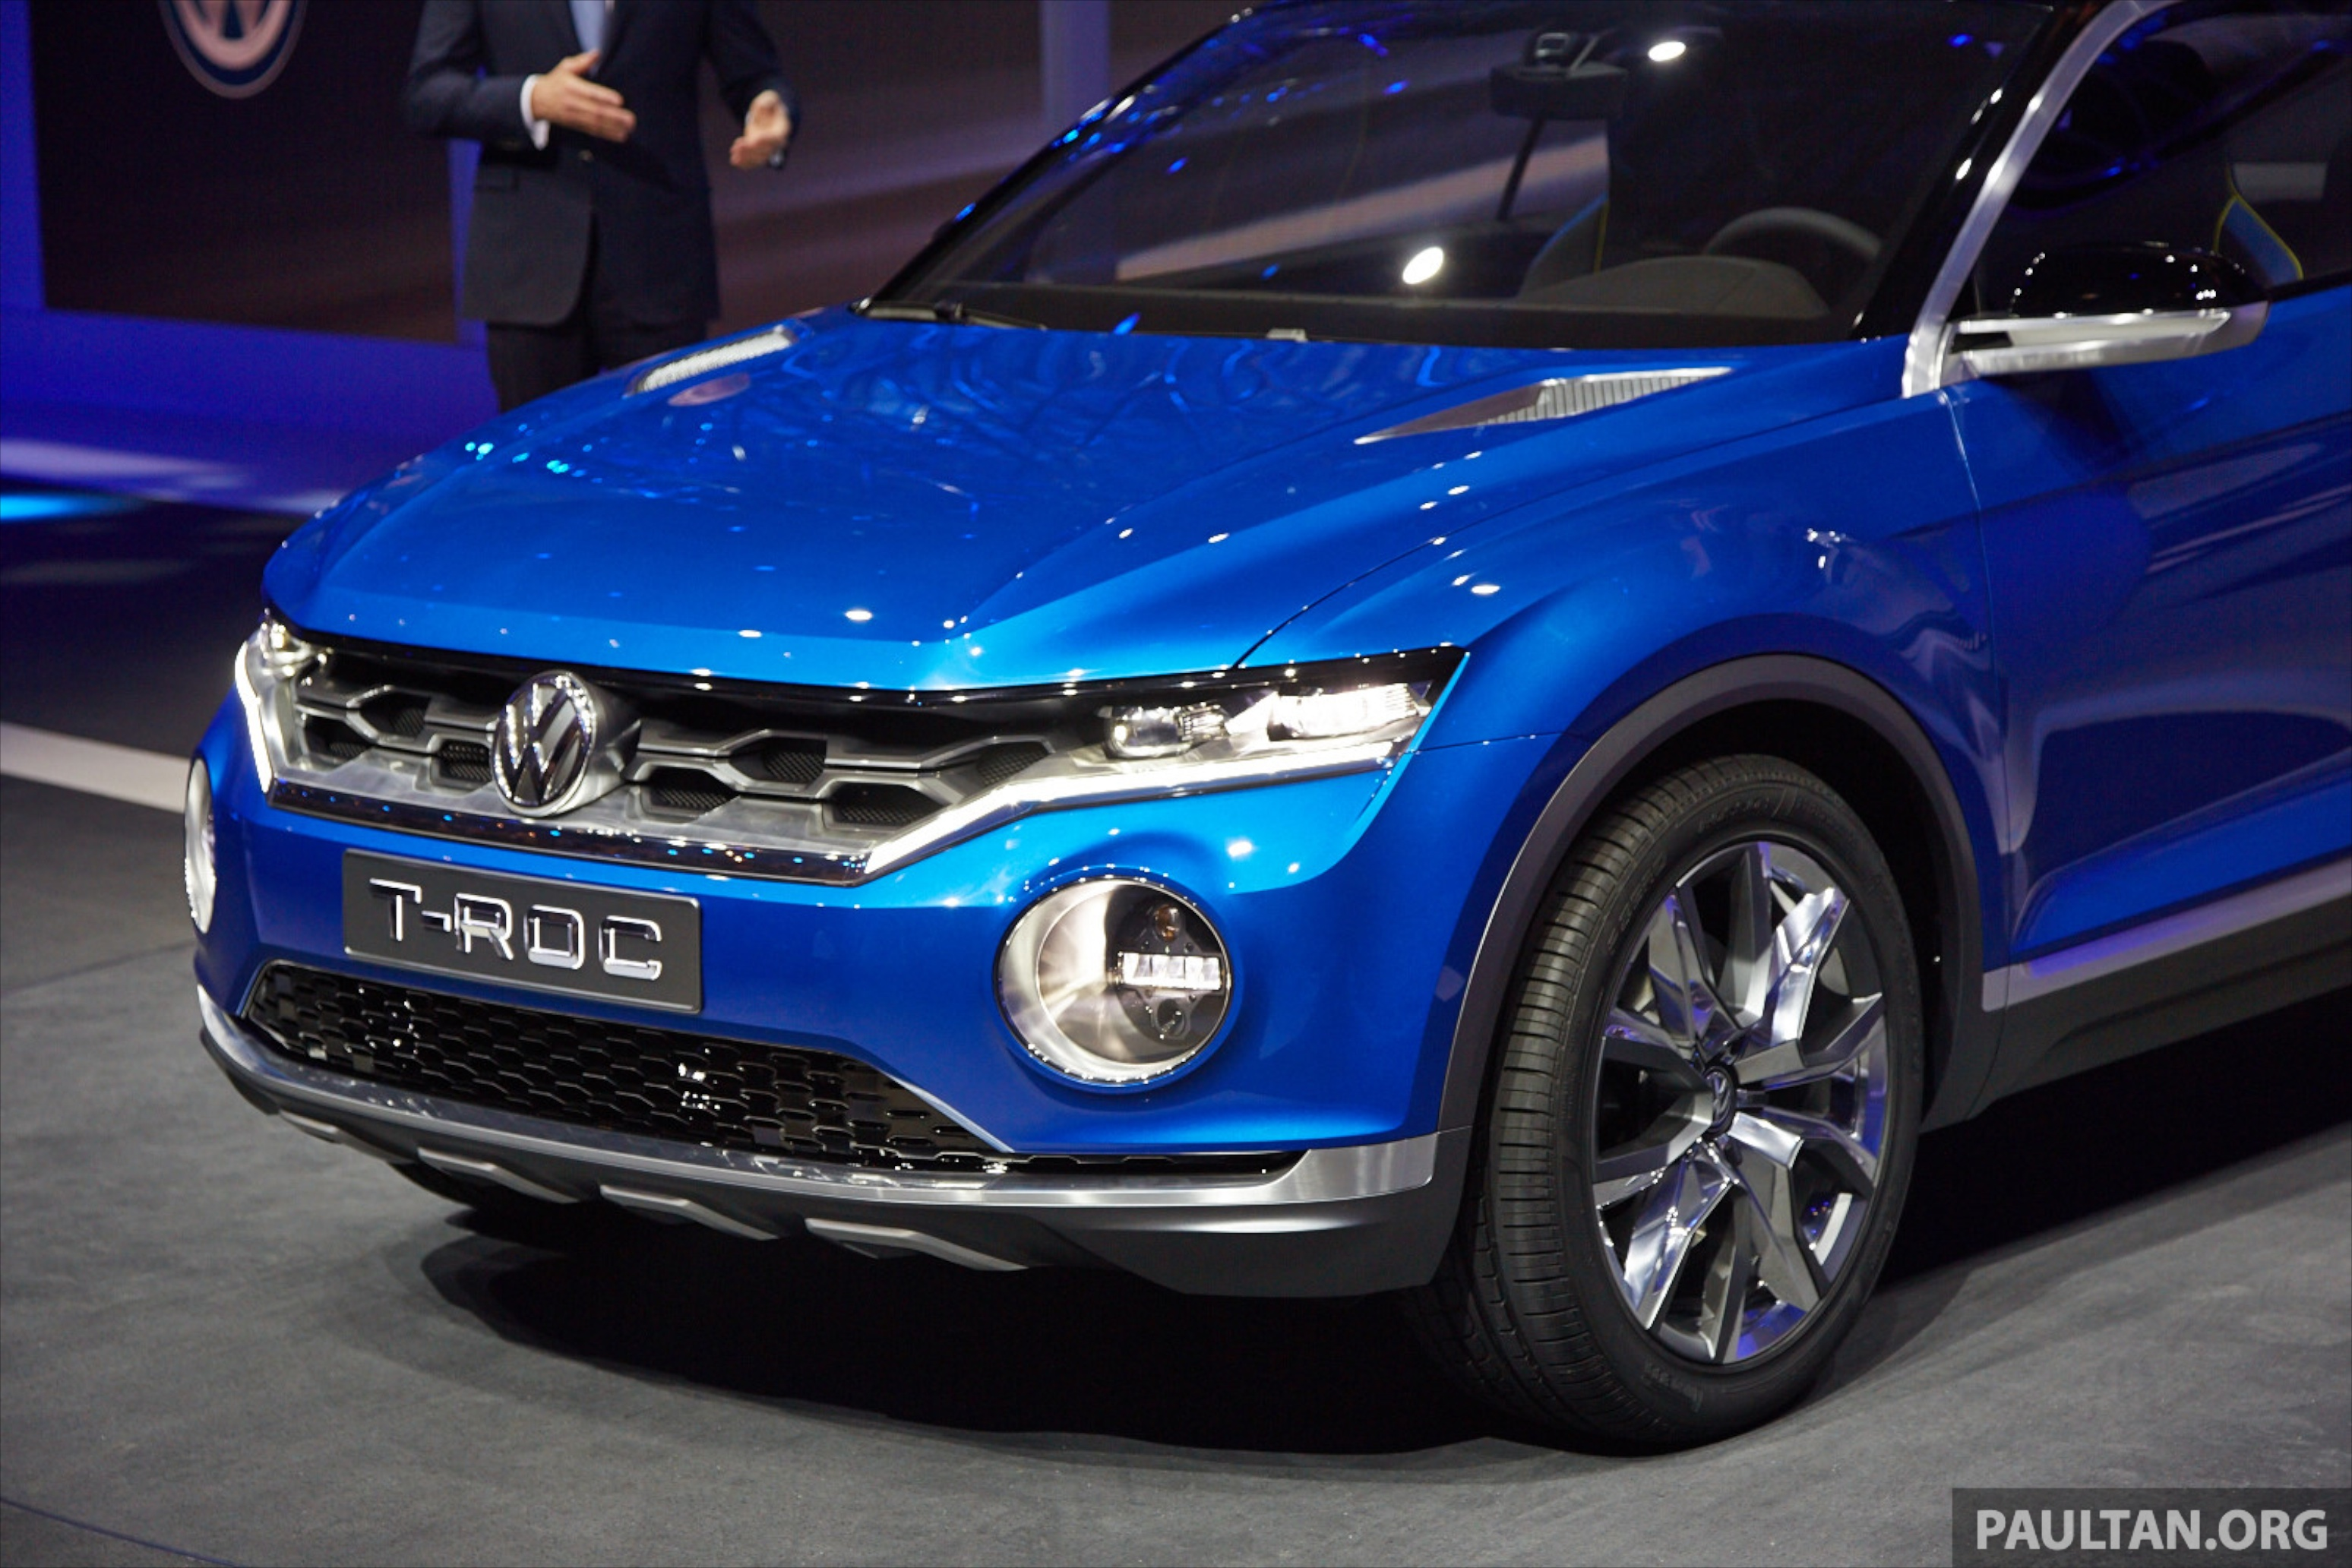 Volkswagen T-ROC Concept previews upcoming SUV Paul Tan - Image 232487